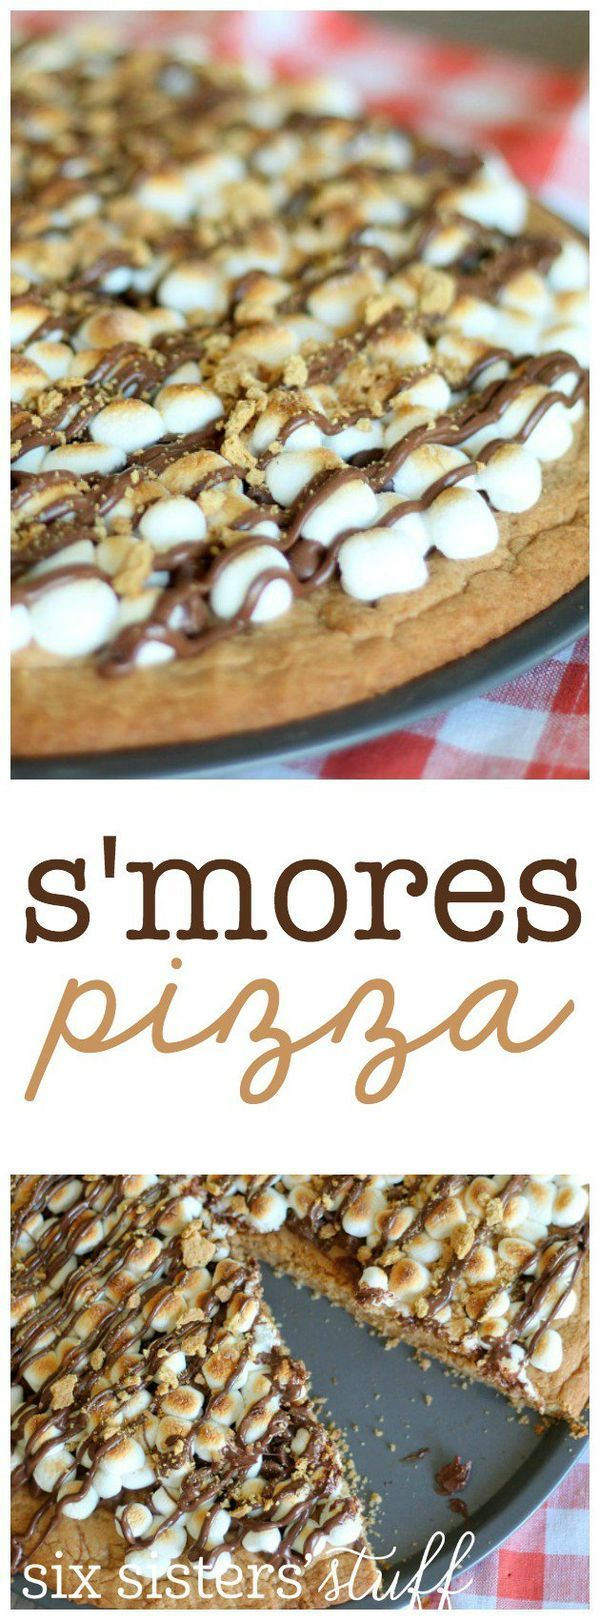 Smore's Pizza.  Sweet and Pizza?  We are in. Check out our silly smores tee too: http://skreened.com/robotface/funny-s-mores-group-hug